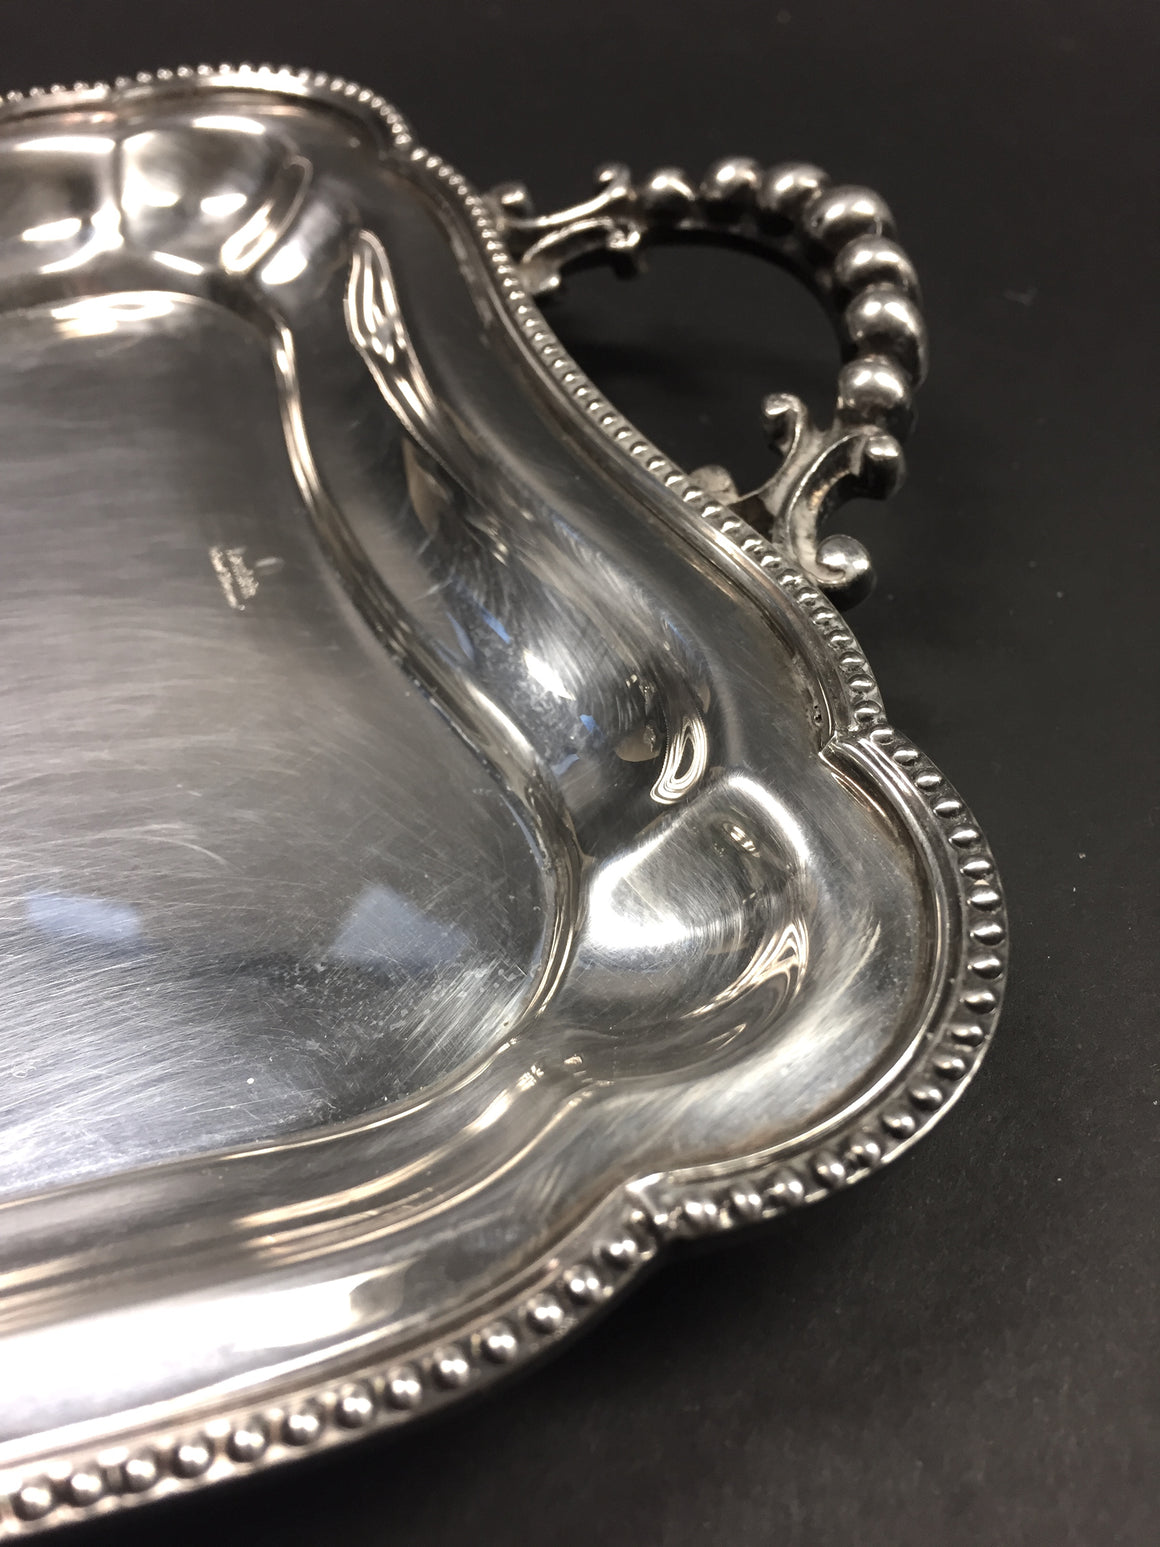 Vintage LAMBIDIS SILVERWARE Heavy Silverplate Small Handled Tray